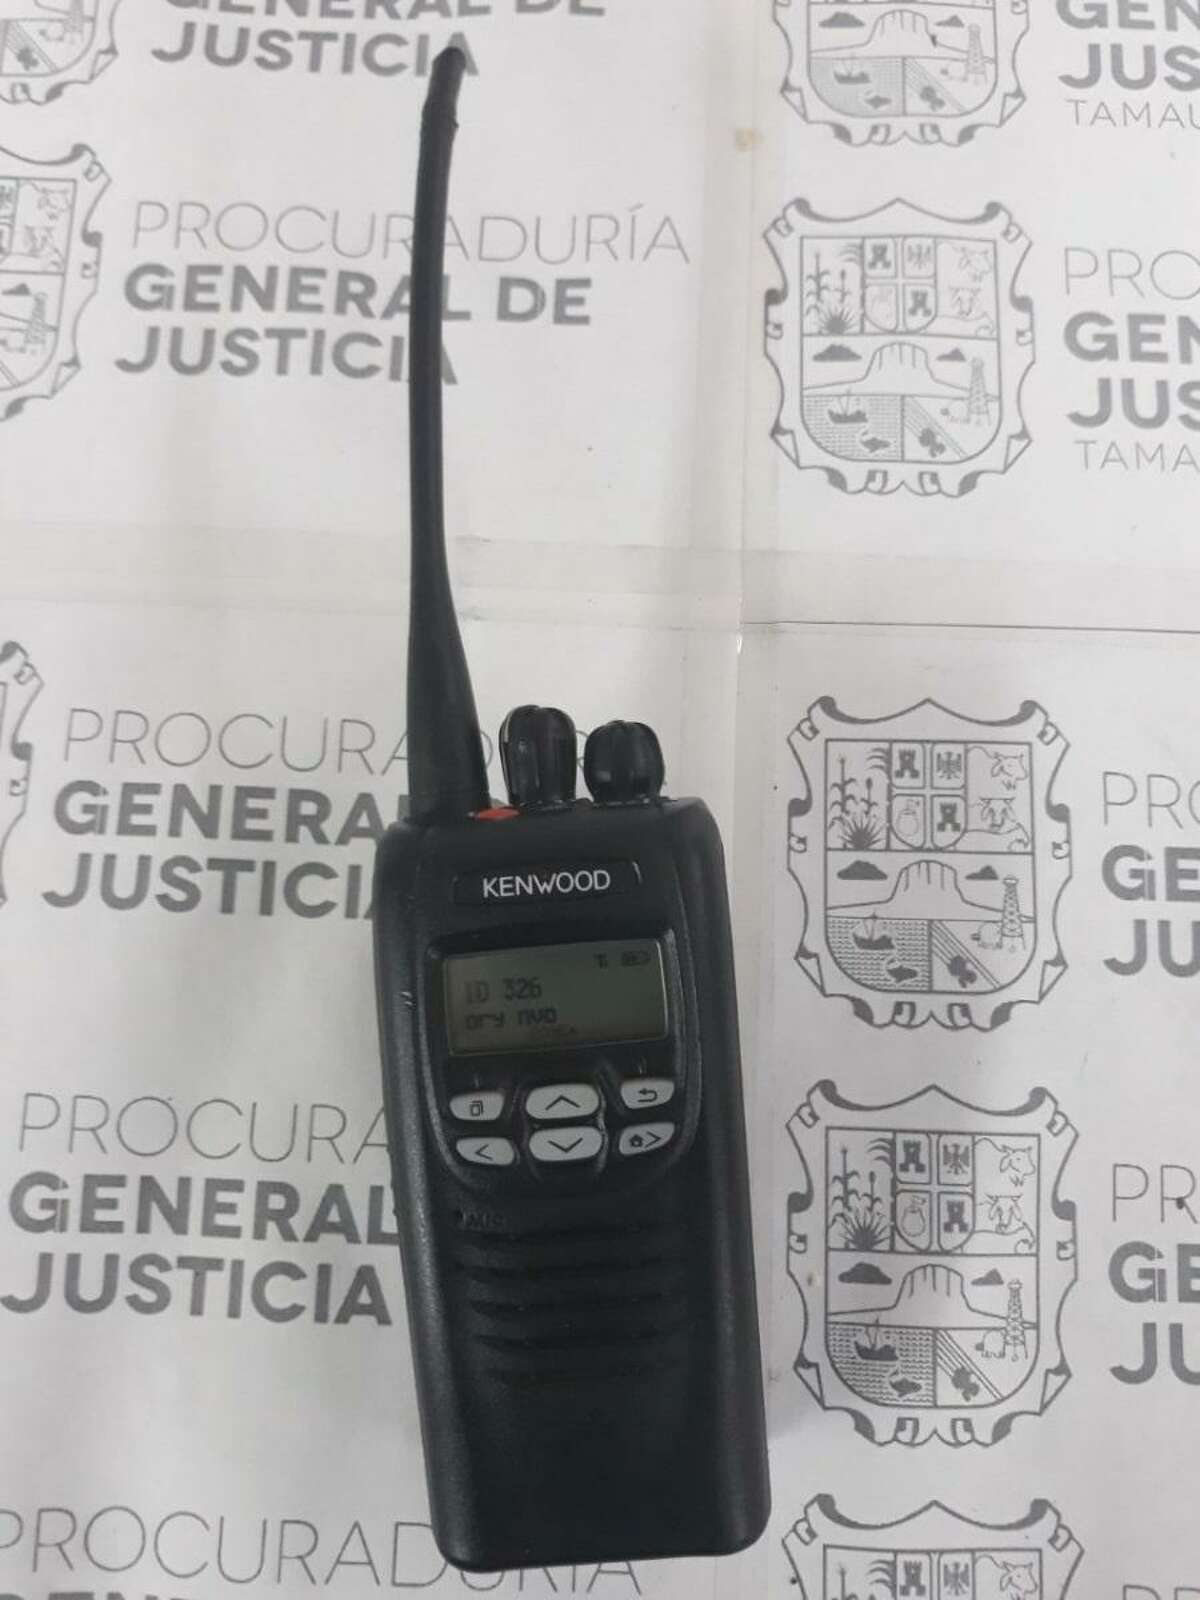 The radio pictured was seized by authorities after they arrested a man who acts as a lookout for a criminal group in Nuevo Laredo.